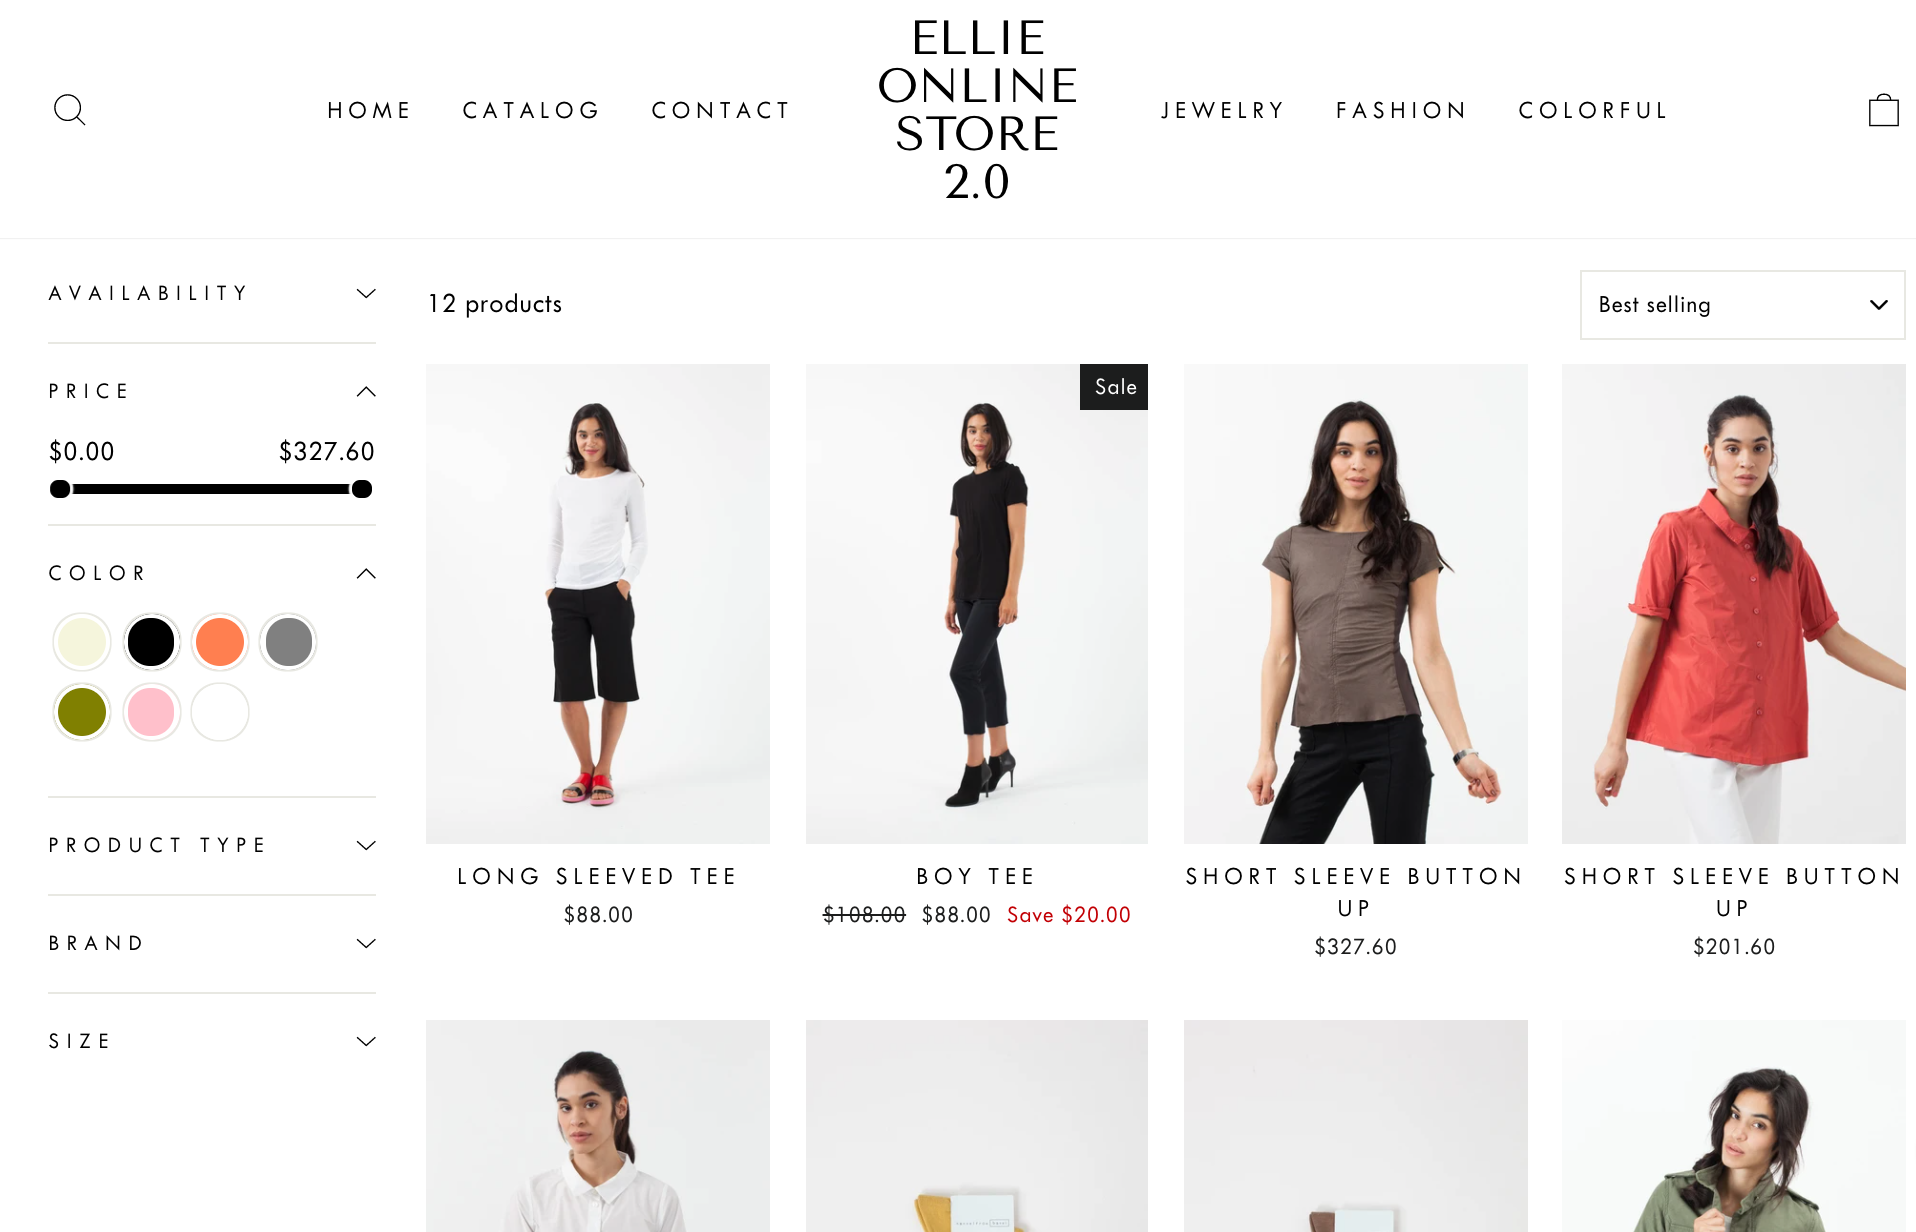 shopify price slider and color swatch filters